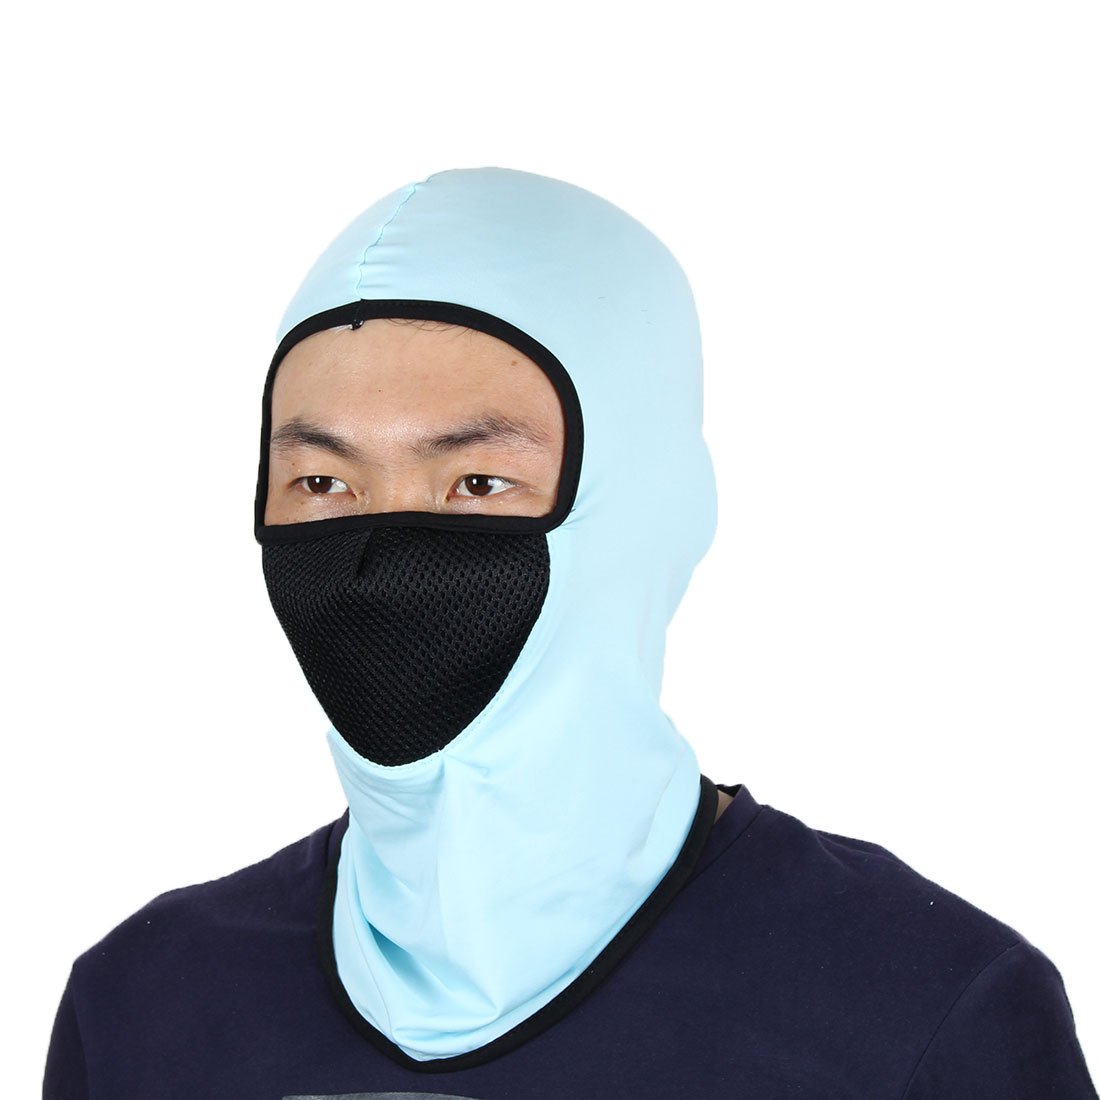 Full Face Mask Outdoor Sports Cycling Neck Protector Hat Helmet Balaclava Blue by